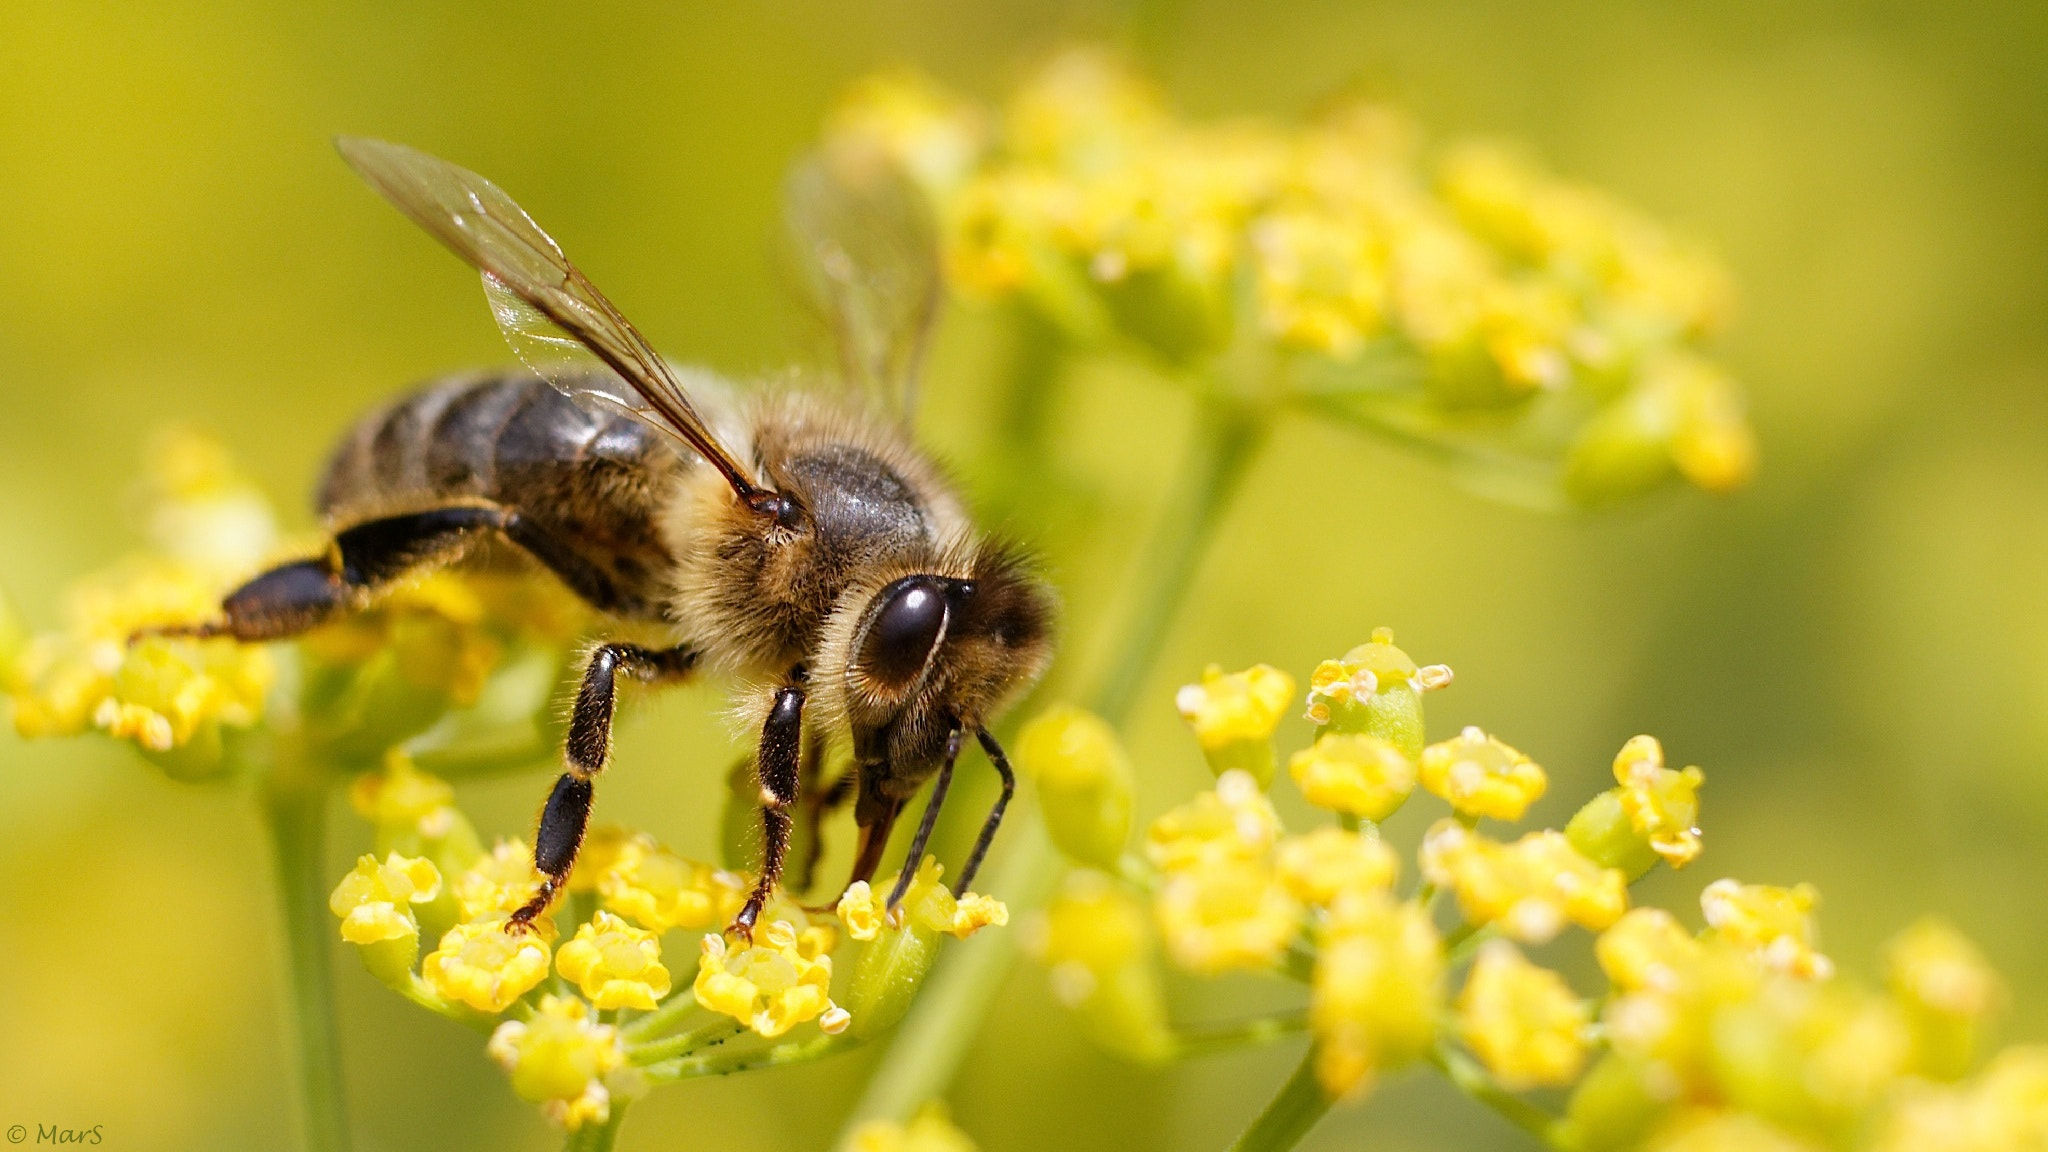 Photograph Let it bee by Sébastien Marchand on 500px